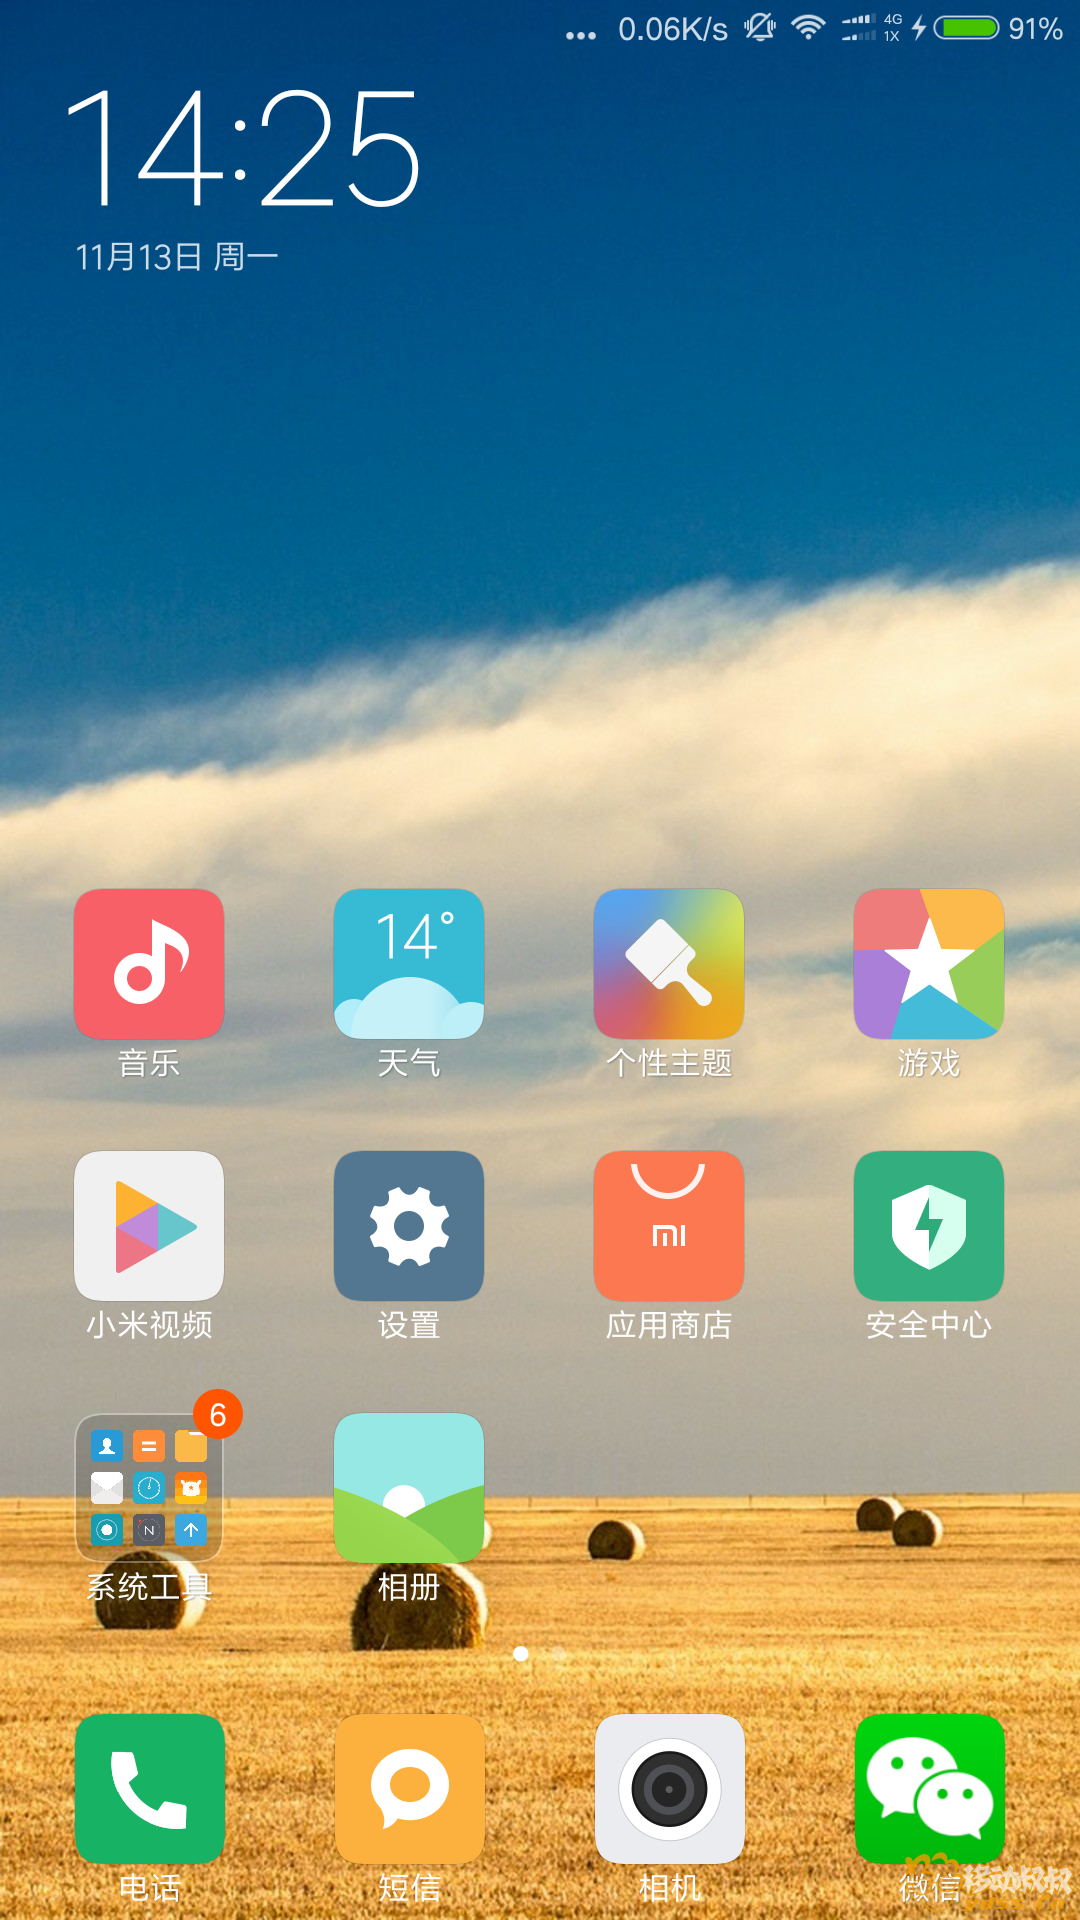 Screenshot_2017-11-13-14-25-09-387_com.miui.home.png